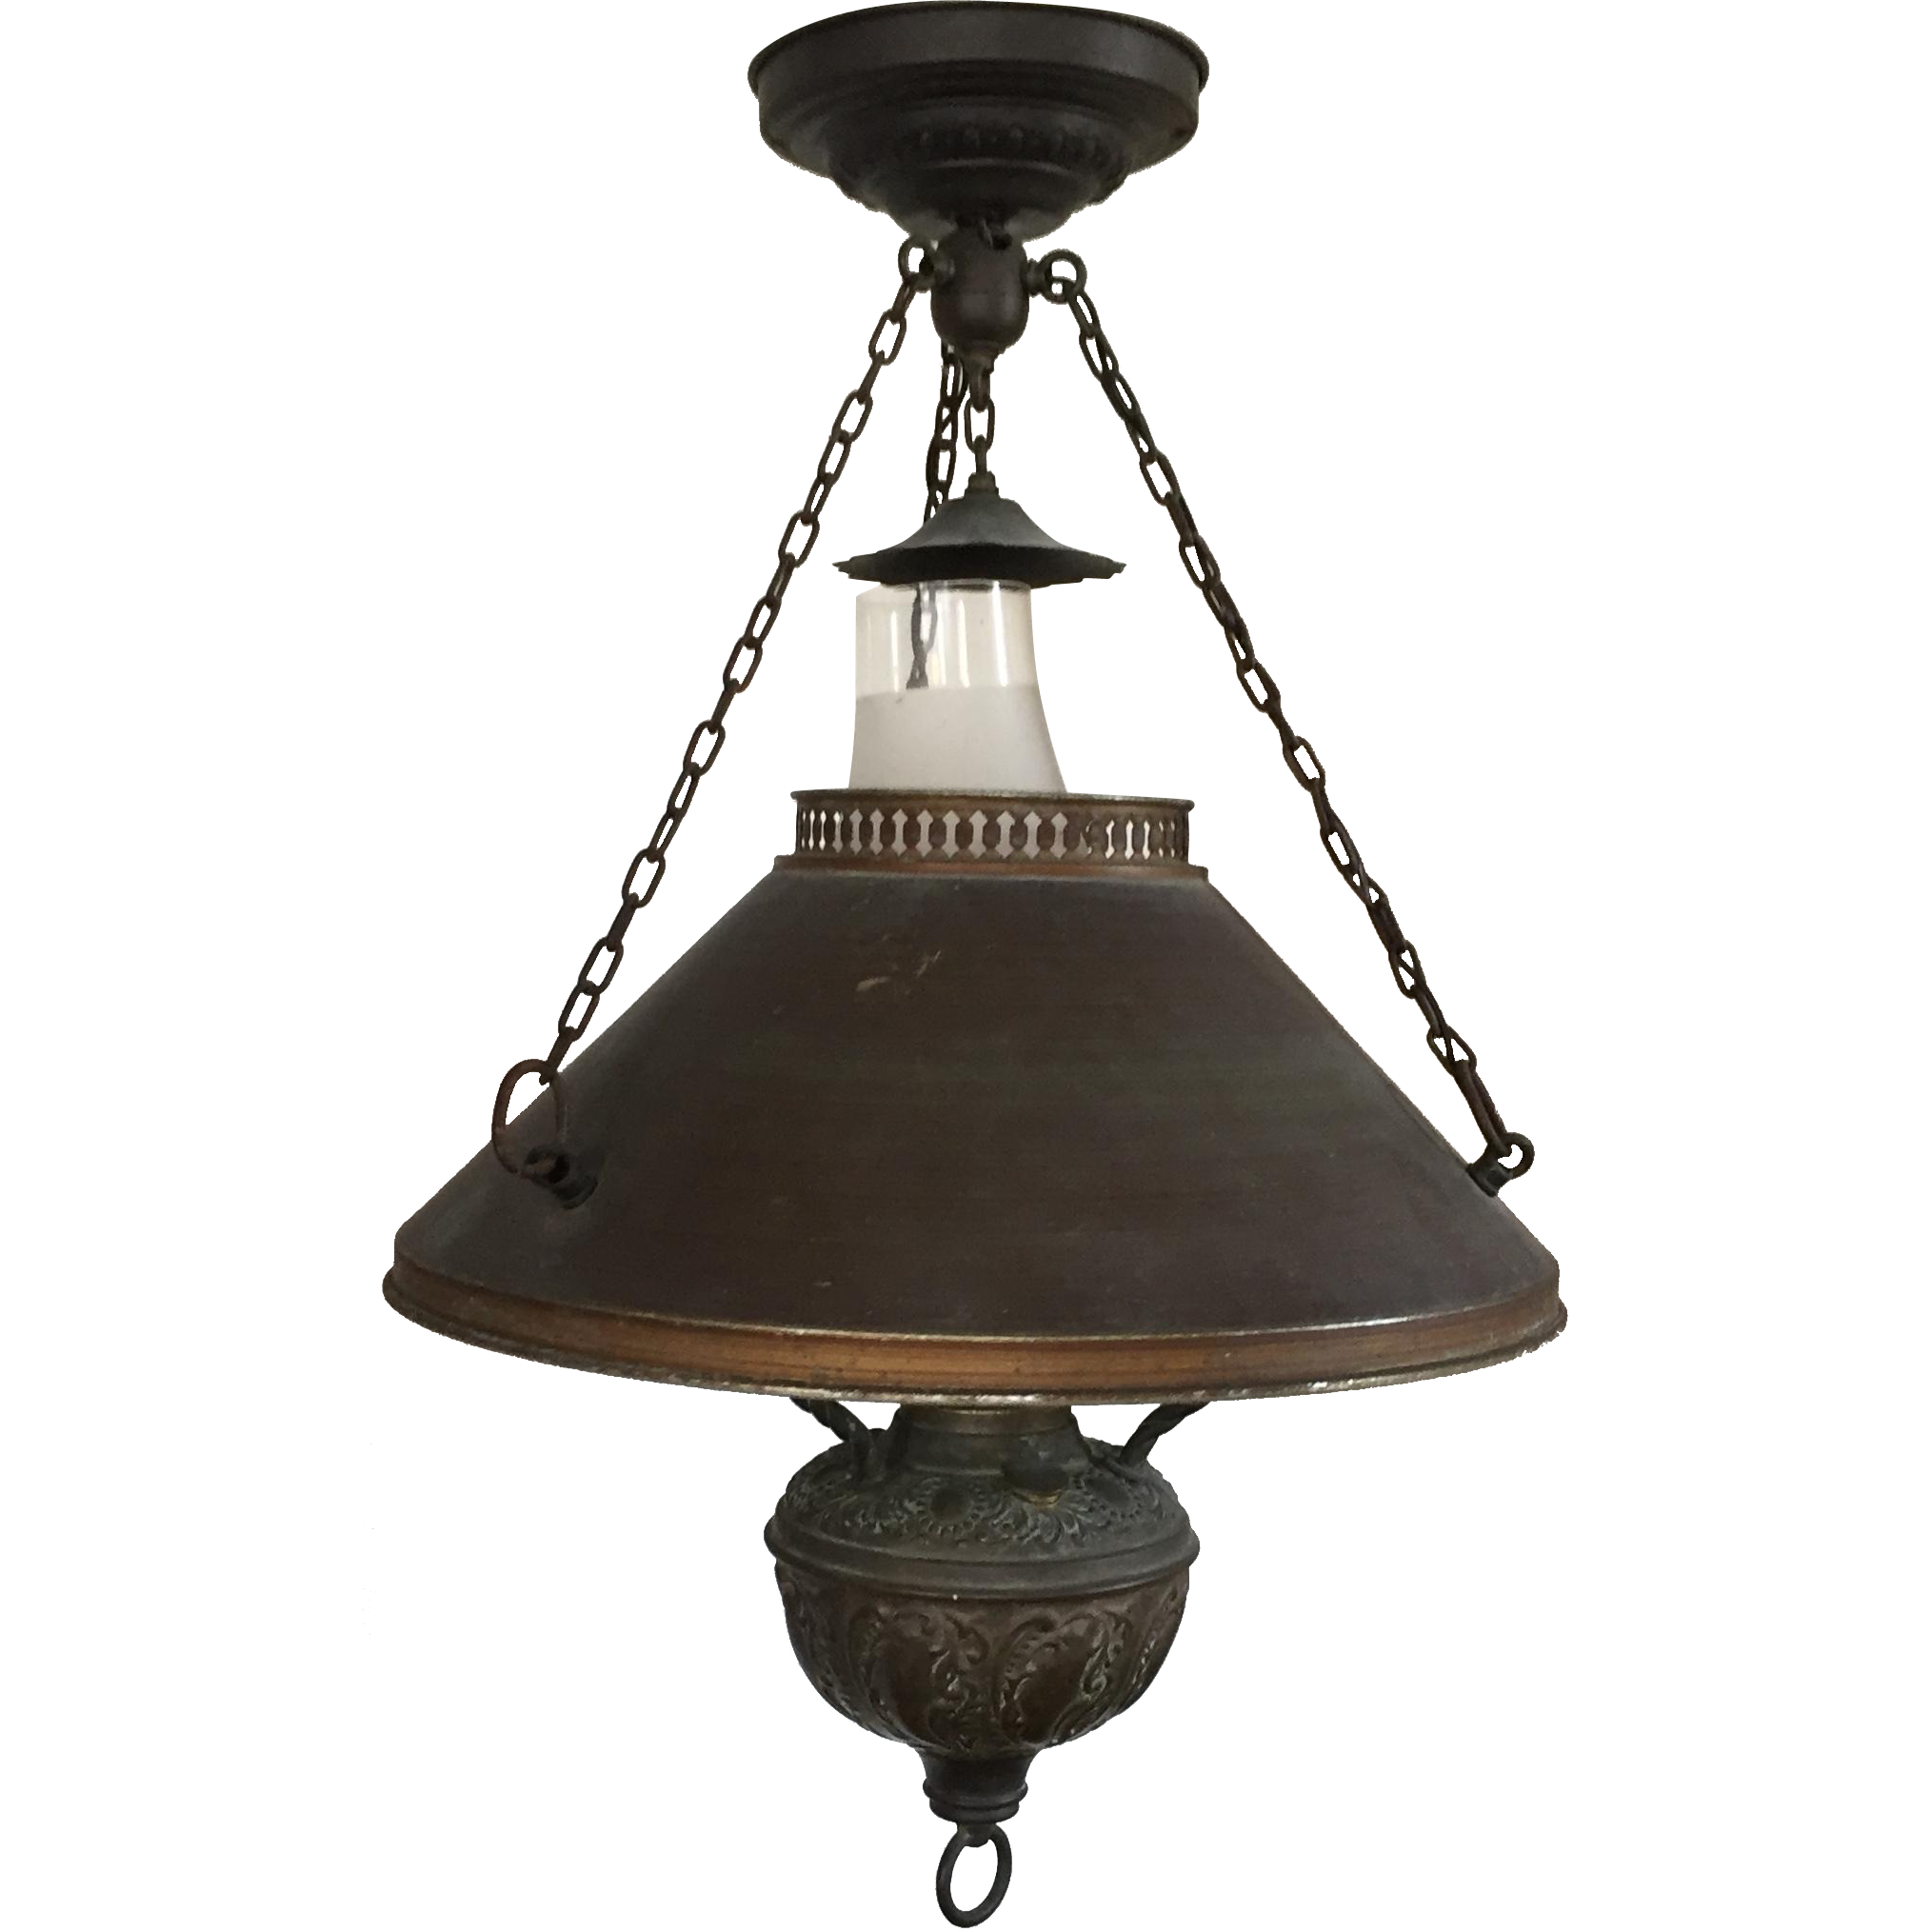 Antique 19th century chandelier hanging oil lamp ceiling light fixture from classictradition on - Chandelier ceiling lamp ...